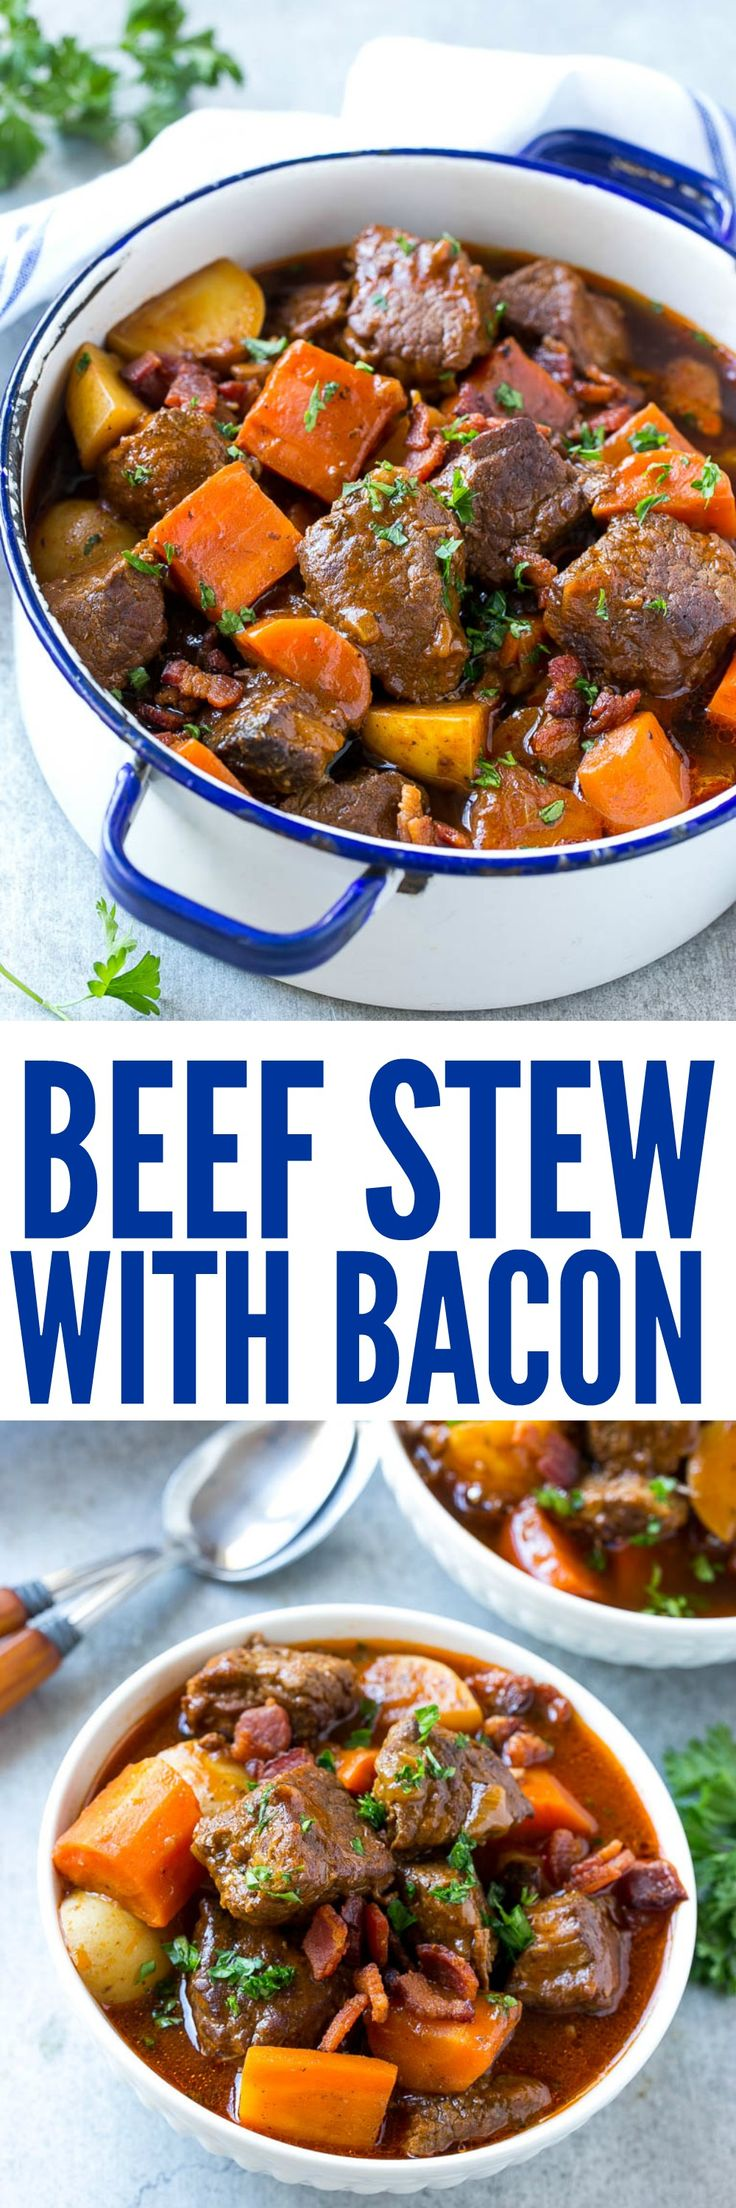 Beef Stew with Bacon is full of tender meat, colorful veggies and plenty of smoky bacon. A one pot meal that's perfect for cold weather!